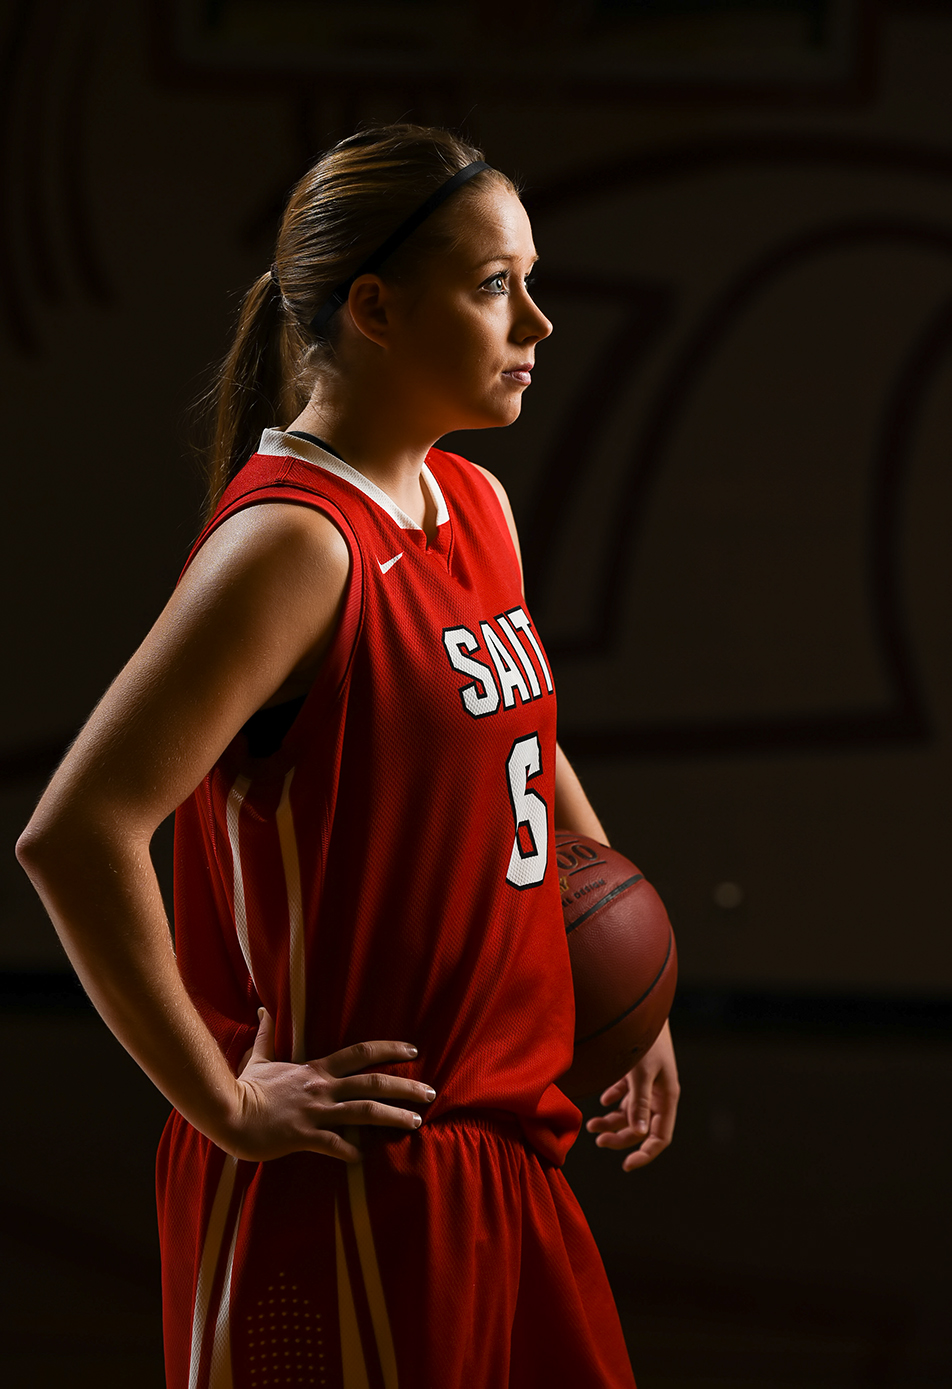 Portrait of a Trojan: Kendell Kuntz, a member of the SAIT Trojans Women's Basketball team poses for a portrait in the Campus Centre gym in Calgary on Thursday, Nov. 19, 2015. Kuntz was modelling for the second year photo-majors as a part of a location lighting workshop. (Photo by Kenneth Appleby/The Press)